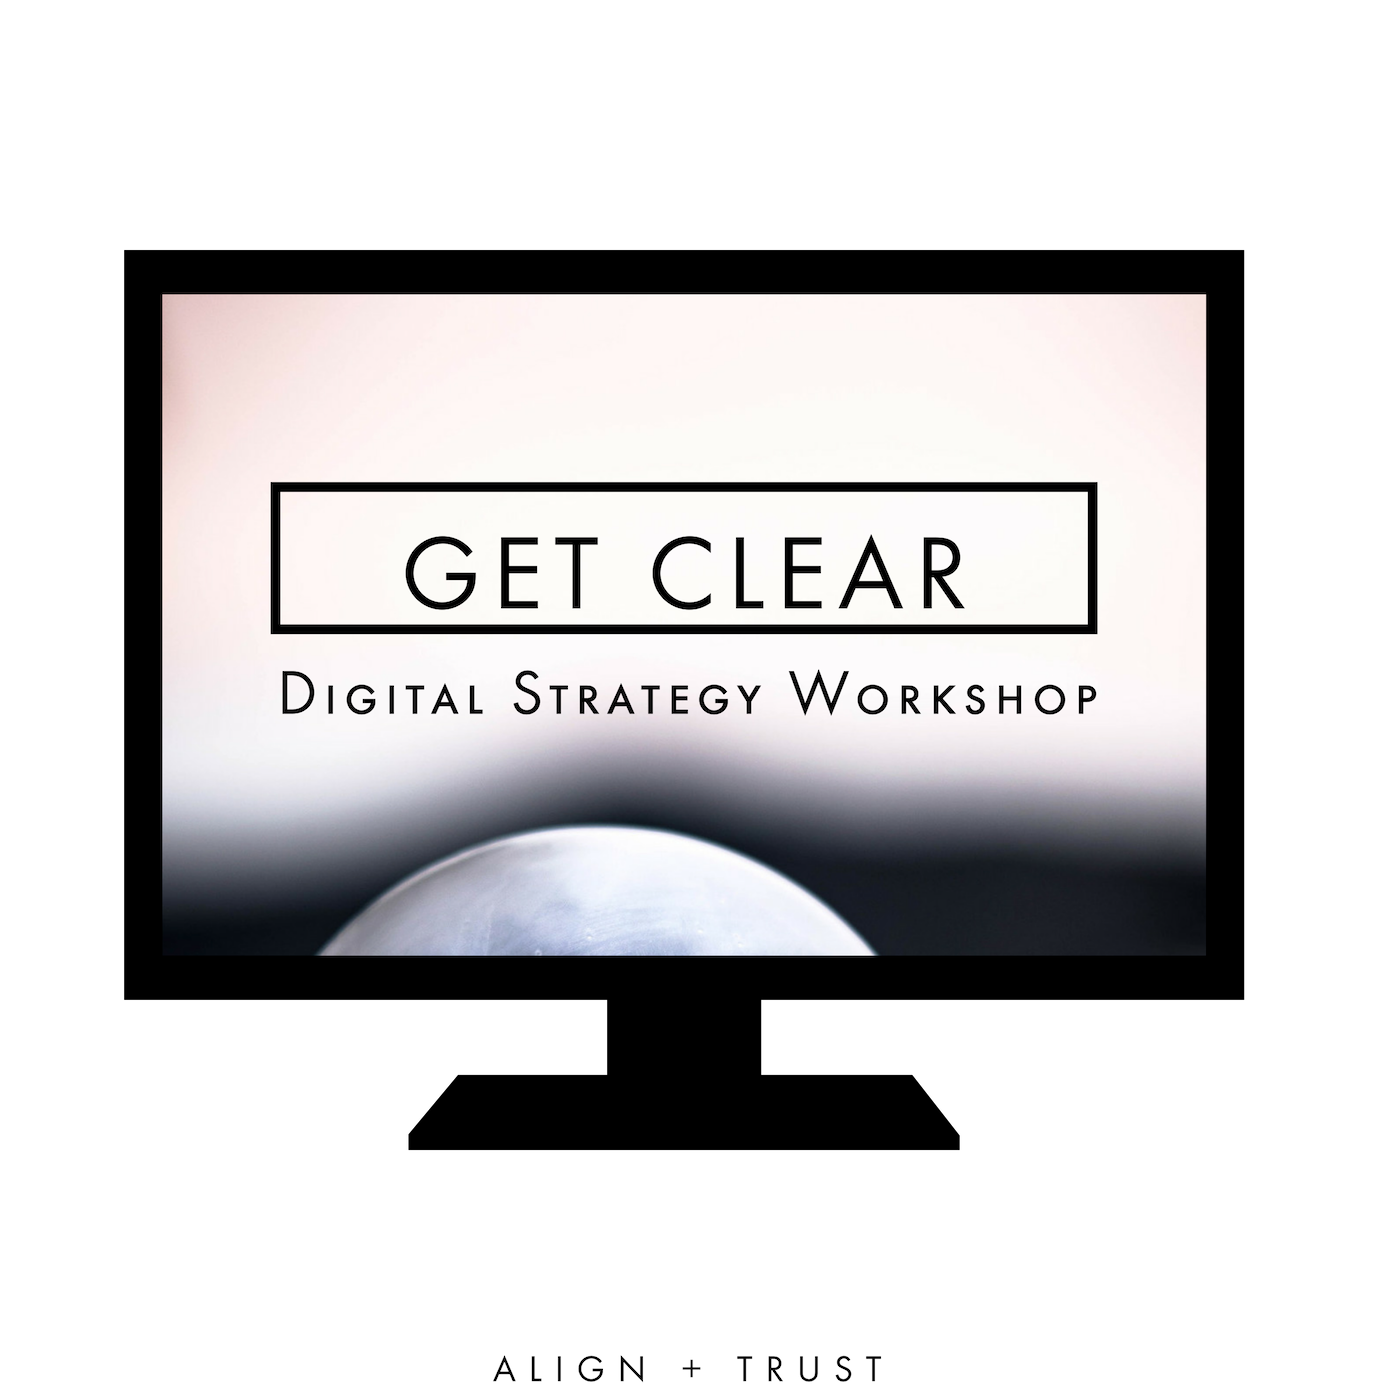 get clear digitial strategy workshop